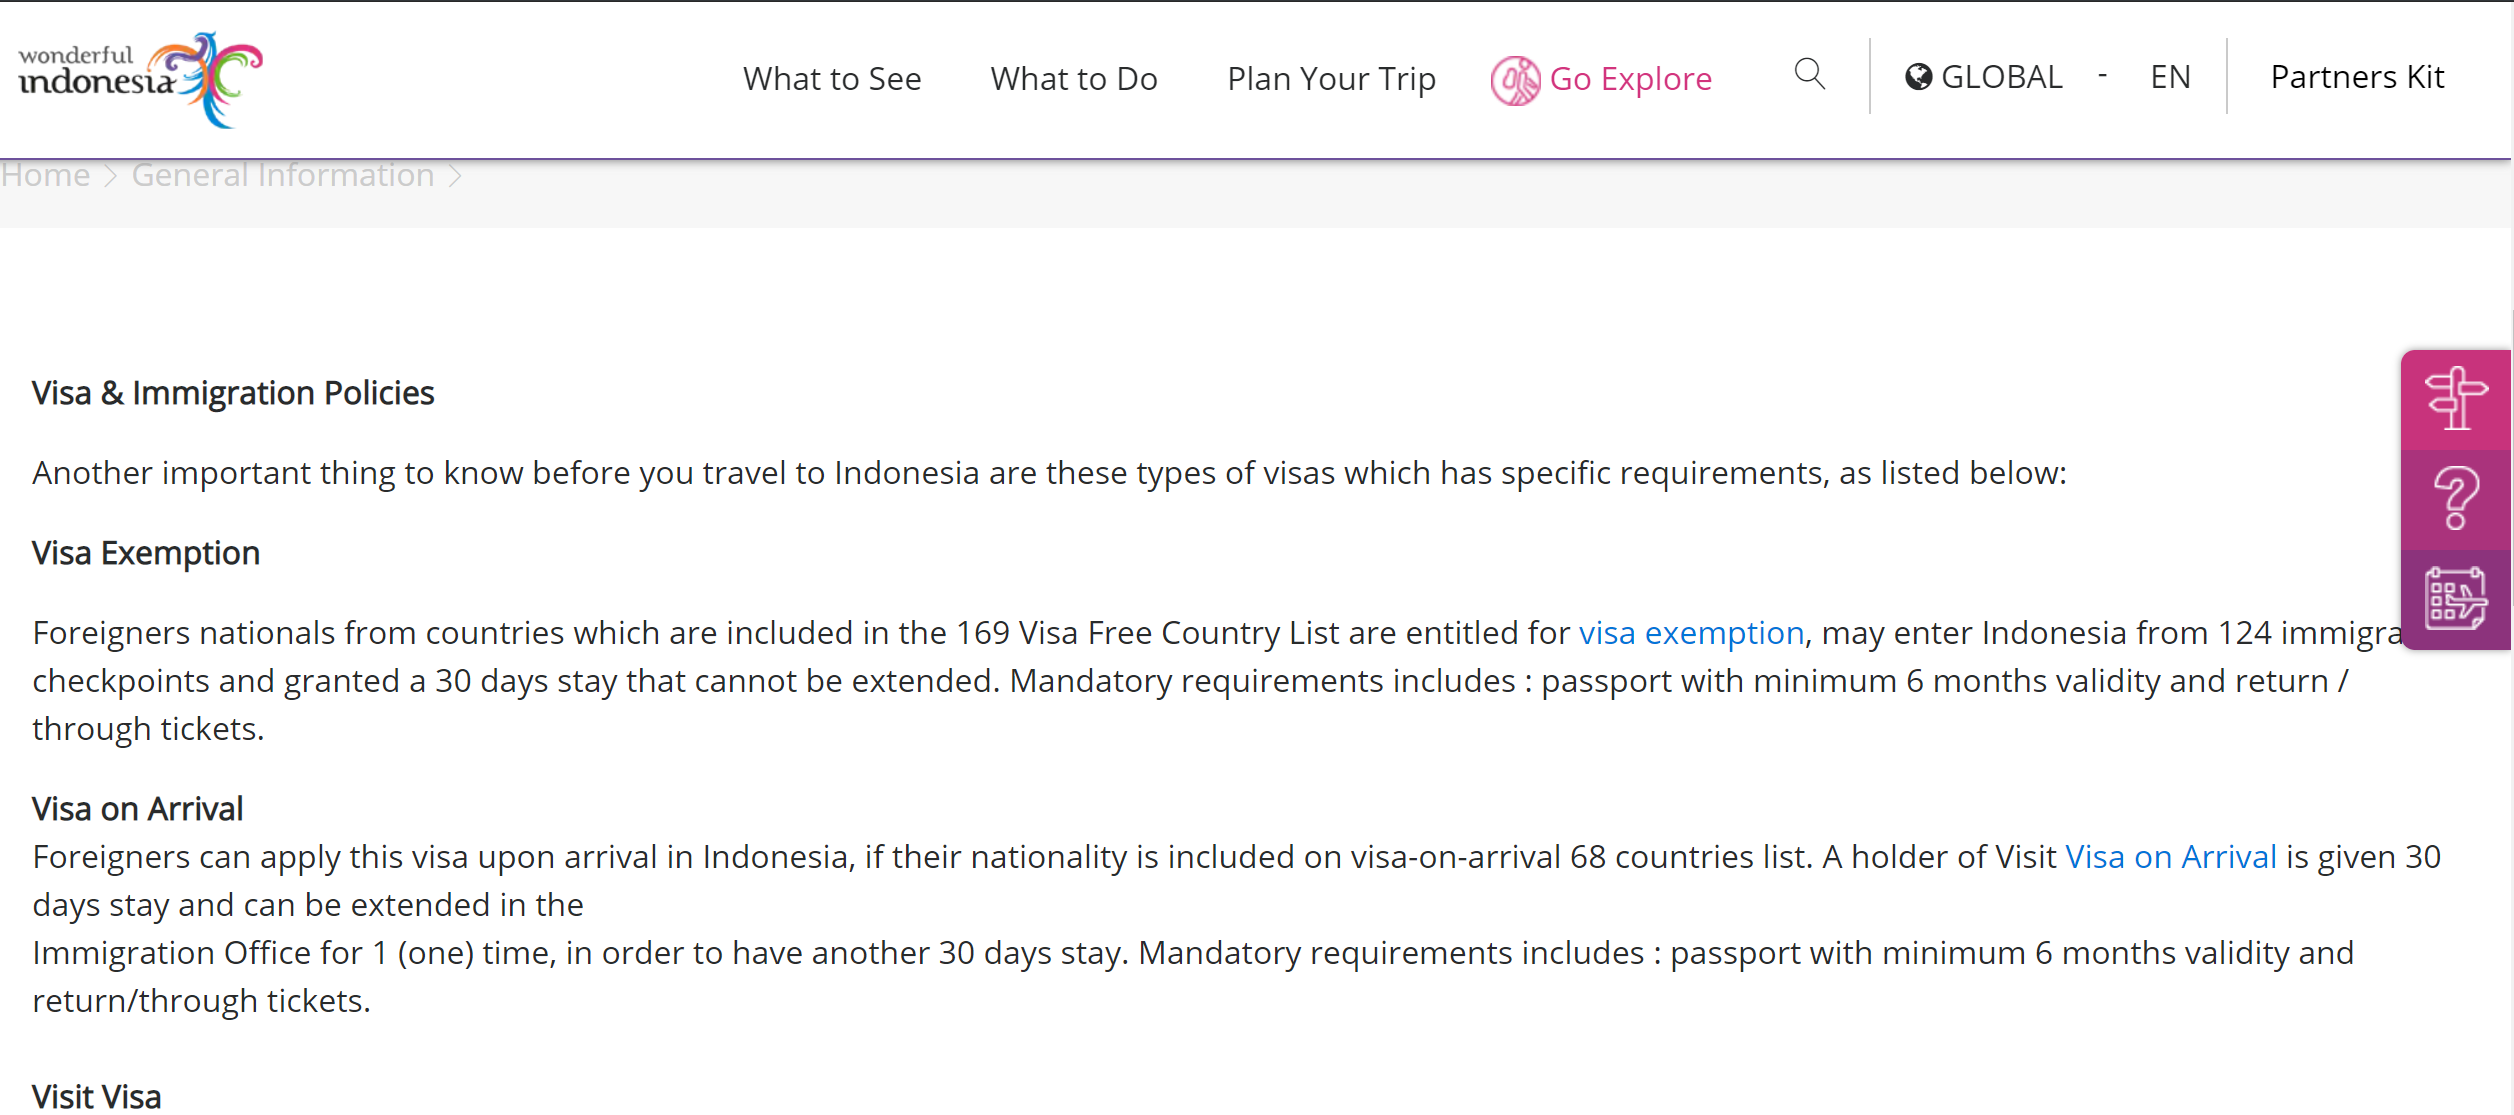 Tourist visa information for Indonesia on Indonesia tourism website